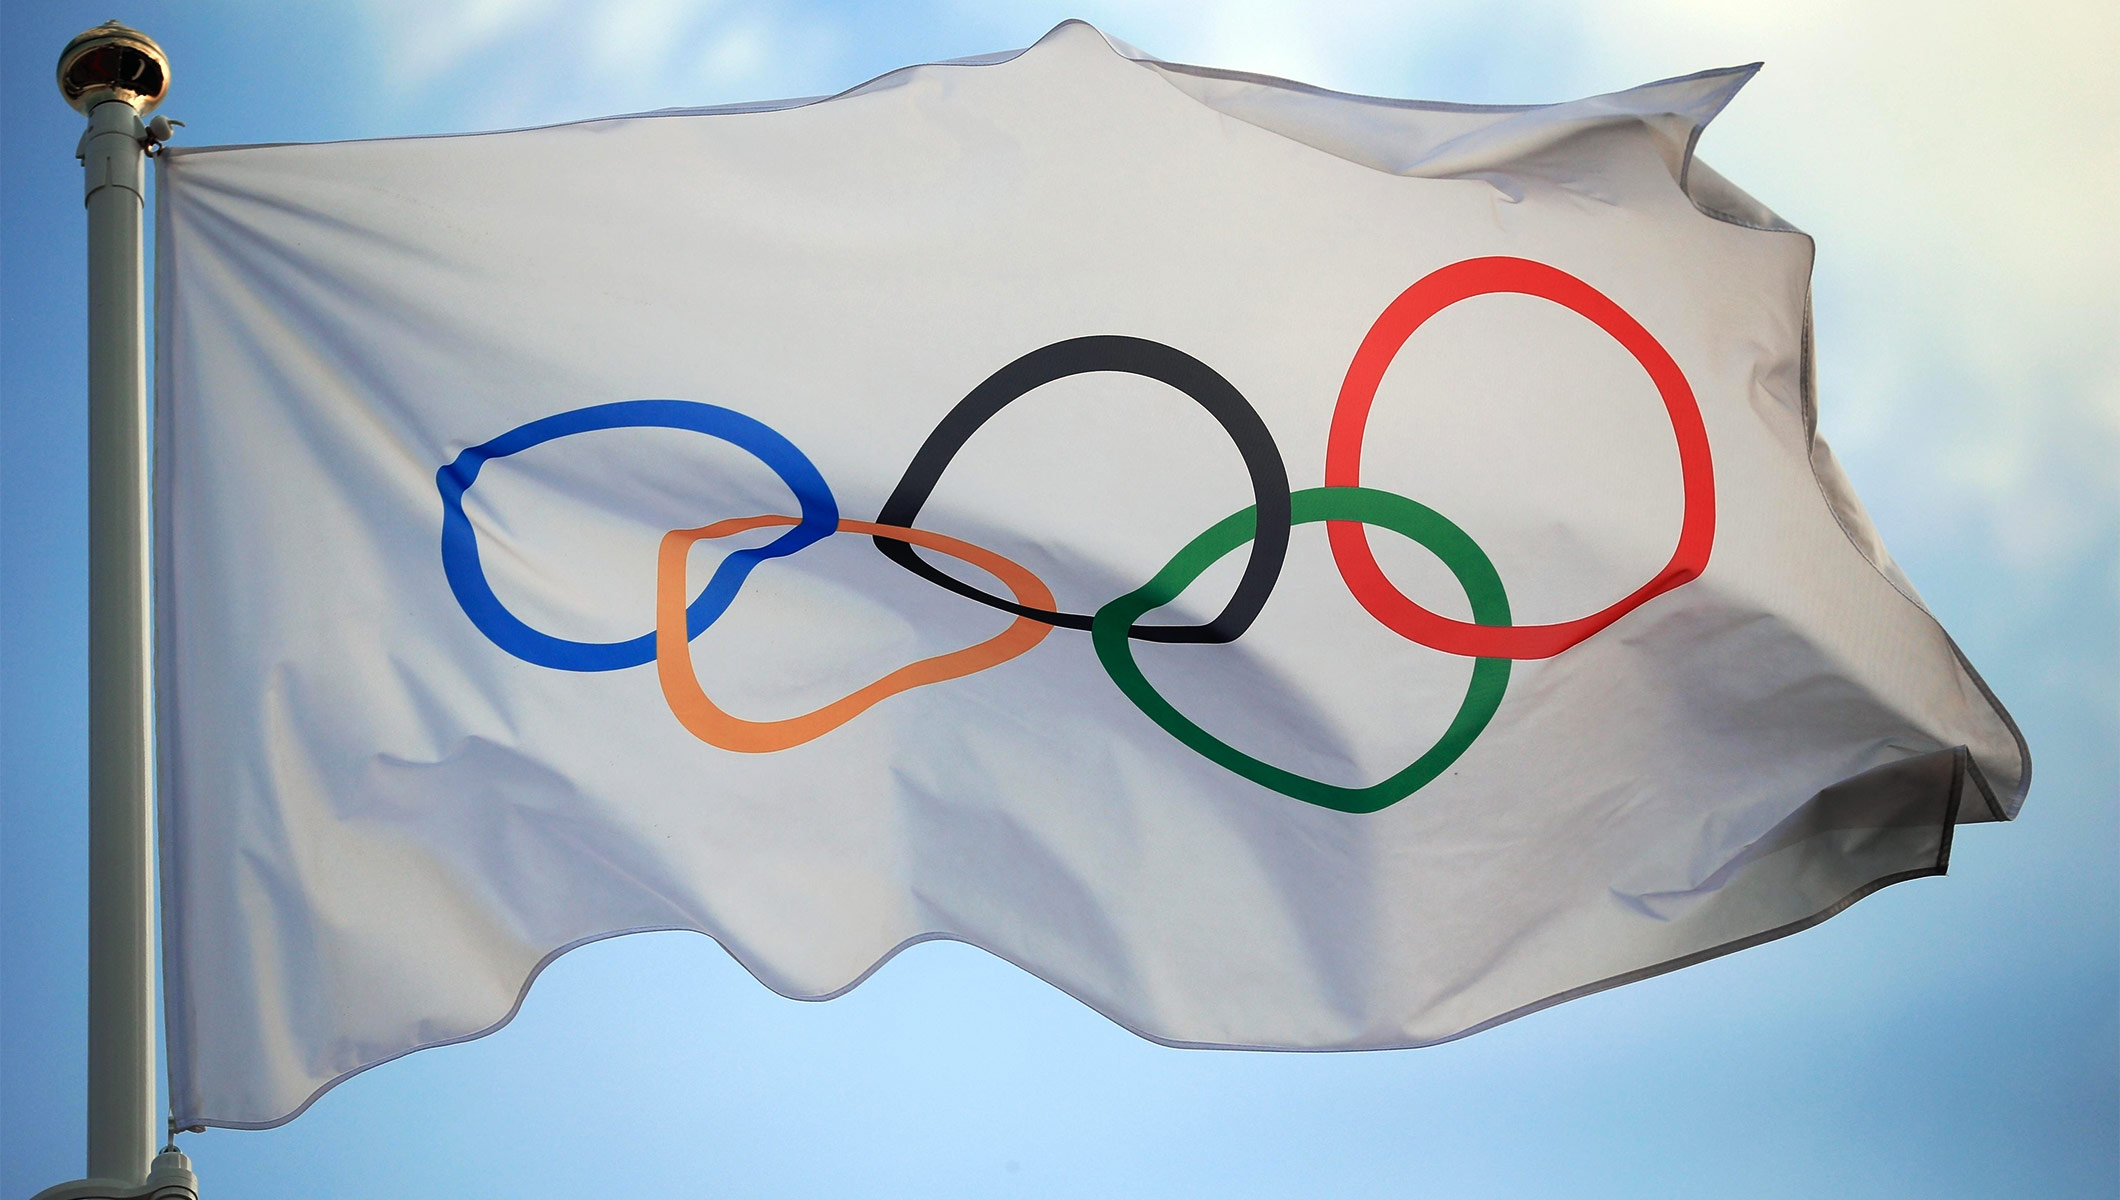 IOC takes a stand against discrimination and celebrates the power of sport to #FightRacism